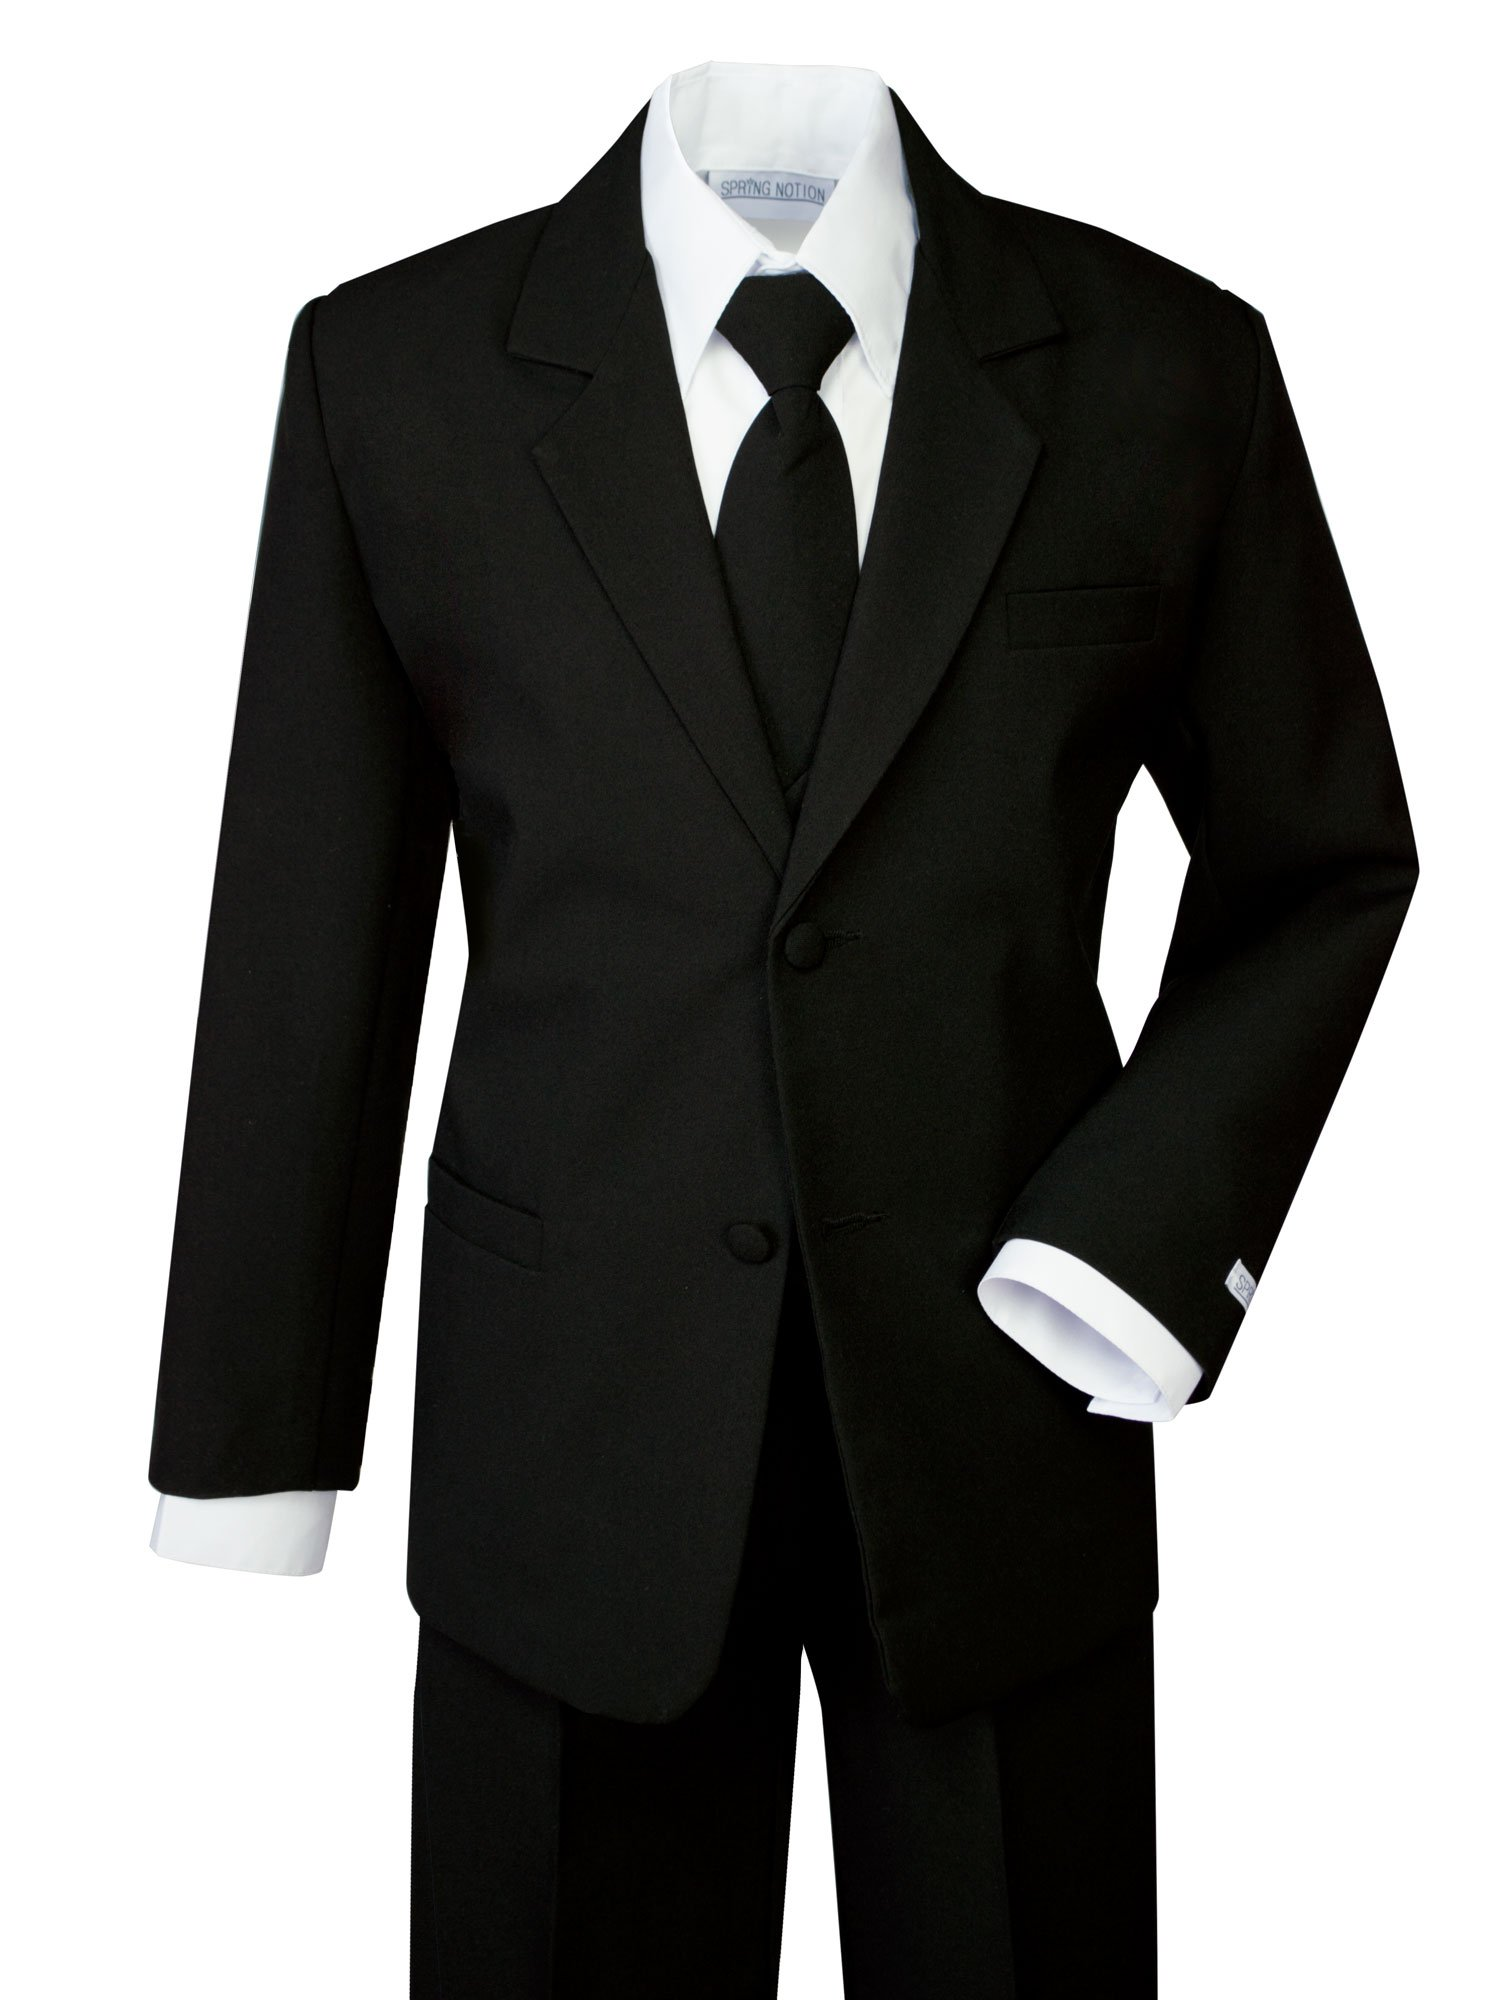 Spring Notion Boys' Formal Black Dress Suit Set 12 by Spring Notion (Image #1)